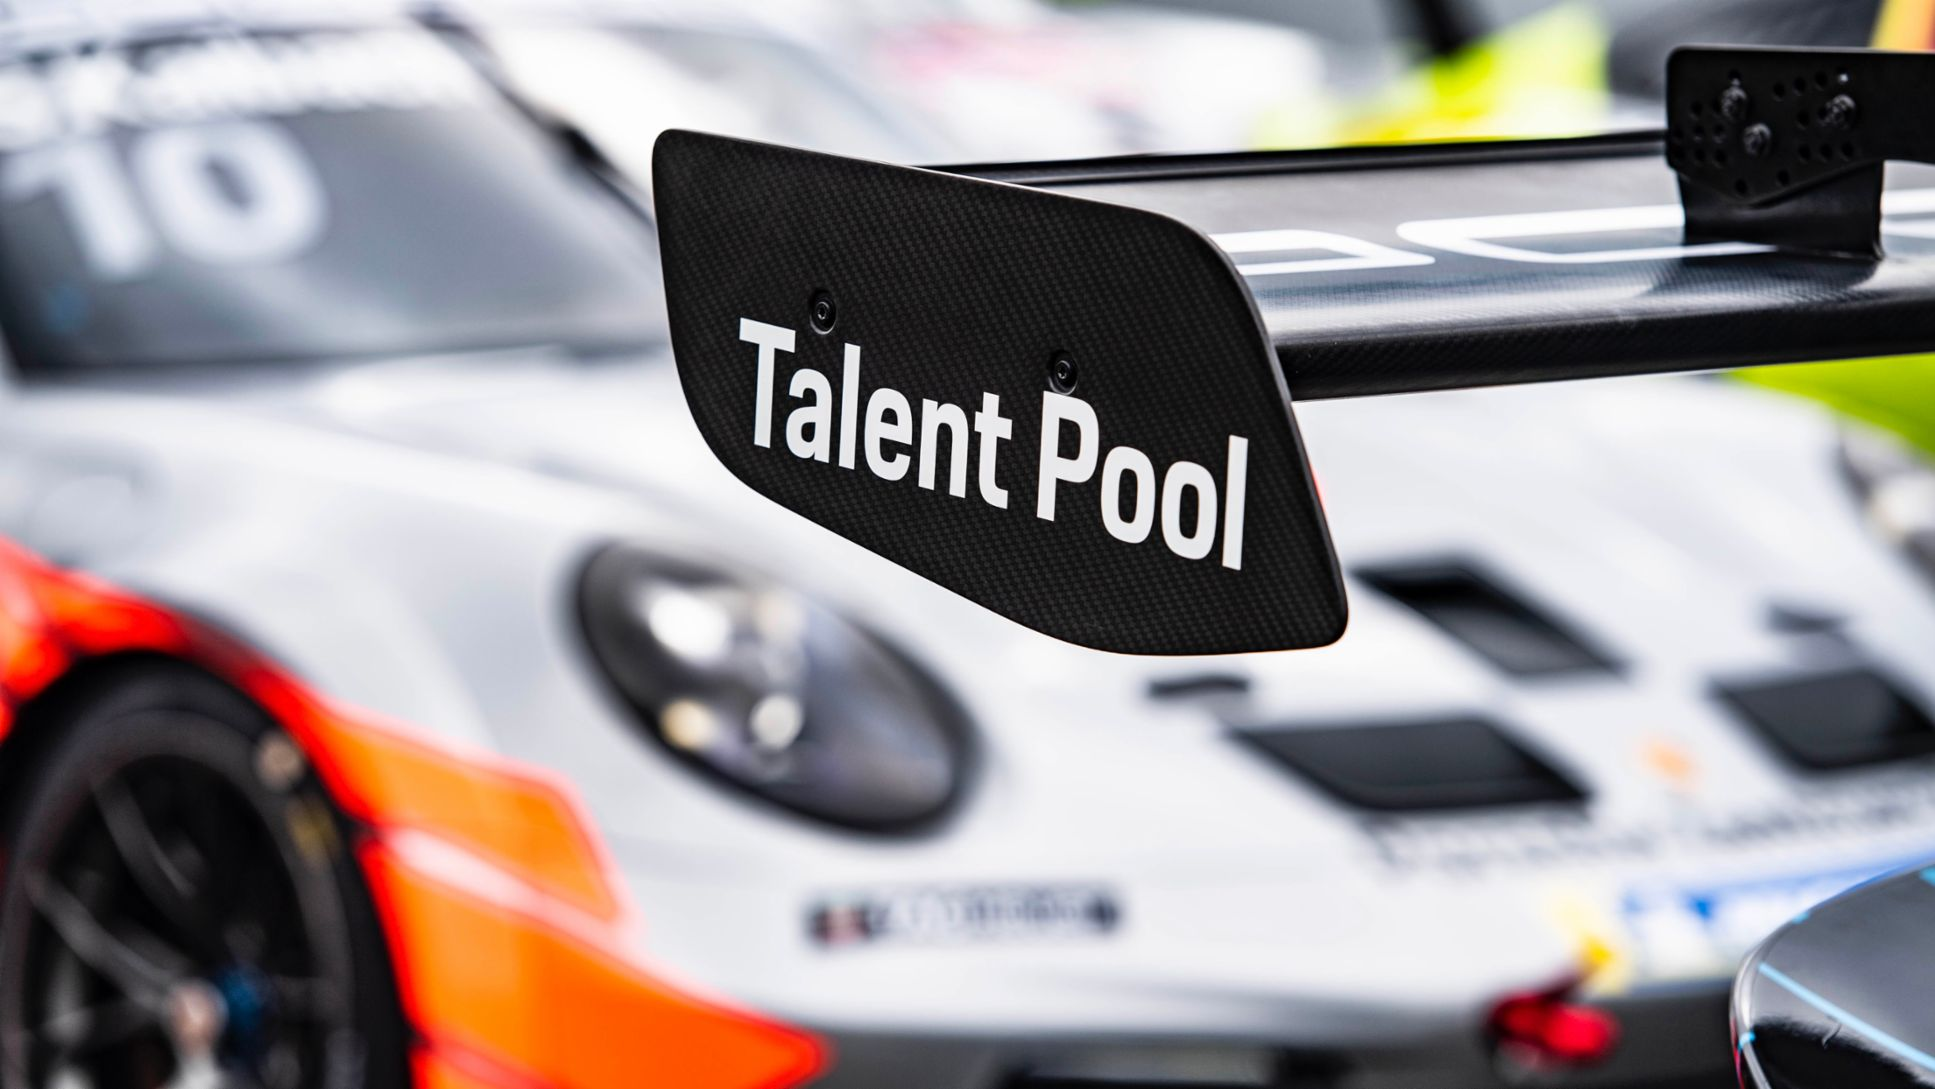 Carrera Cup talent pool: on track to becoming a pro racer - Image 8